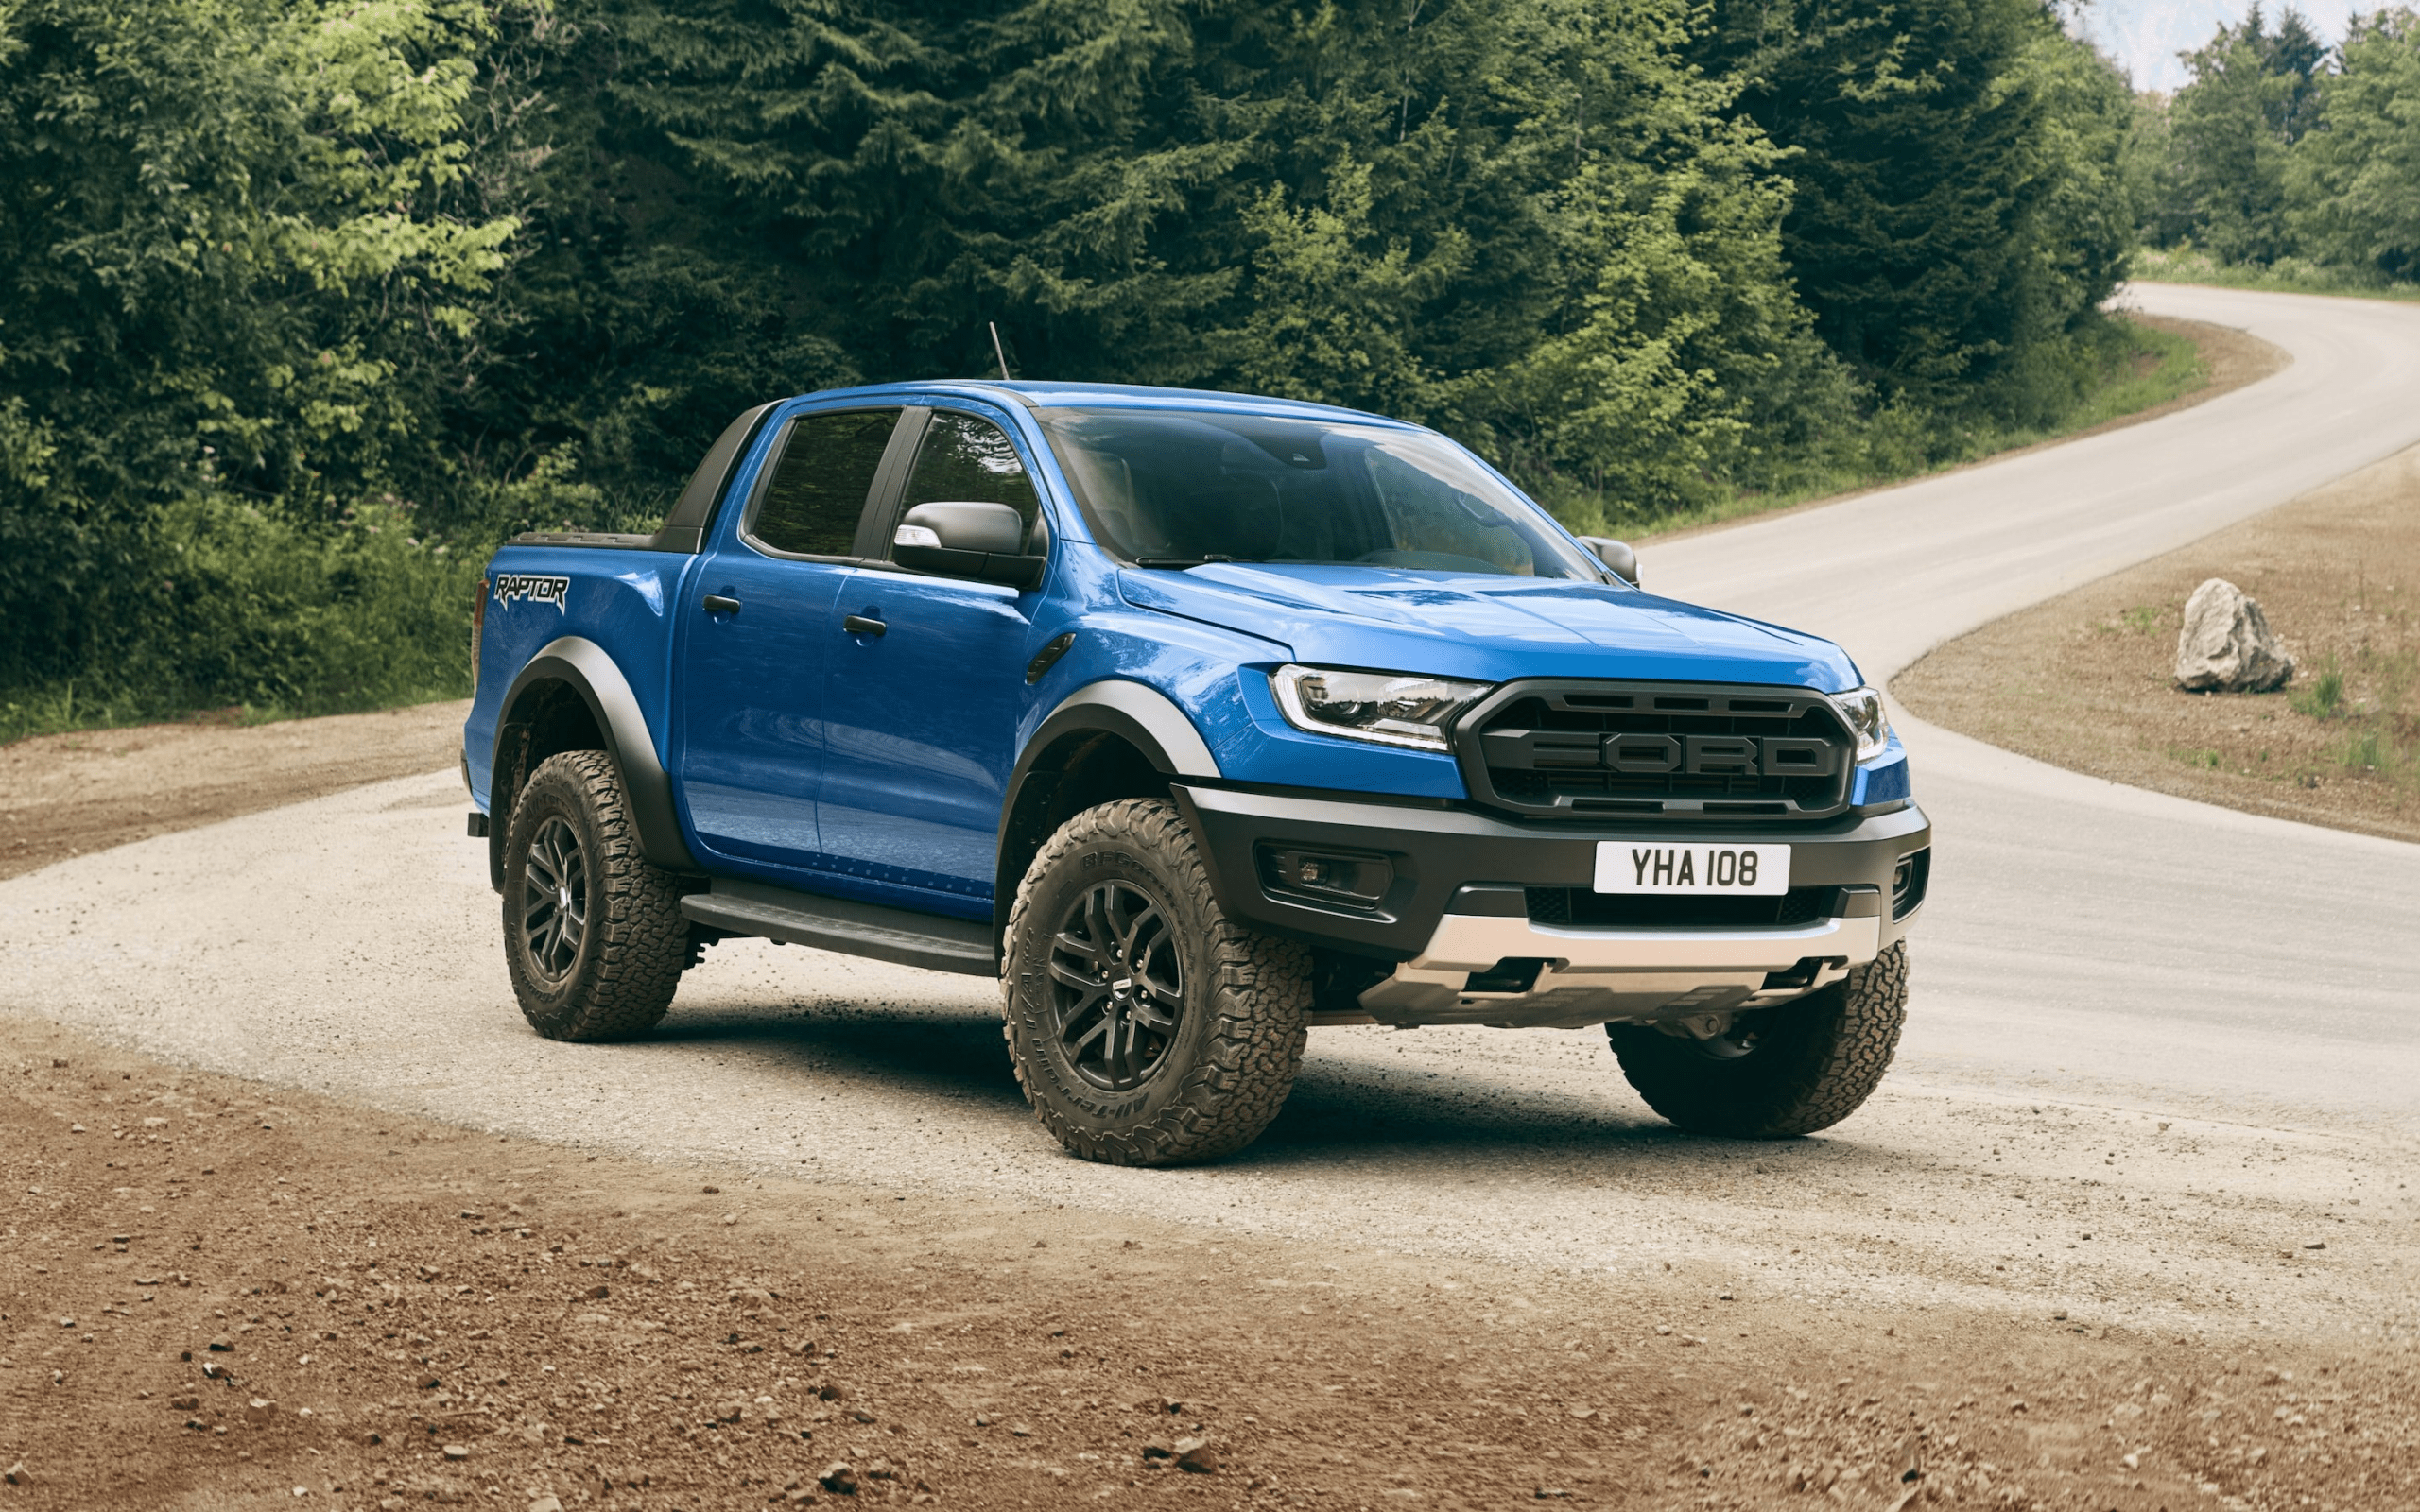 2019 Ford Ranger Raptor Pictures Photos Wallpapers And Video Ford Ranger Raptor Ford Ranger 2019 Ford Ranger